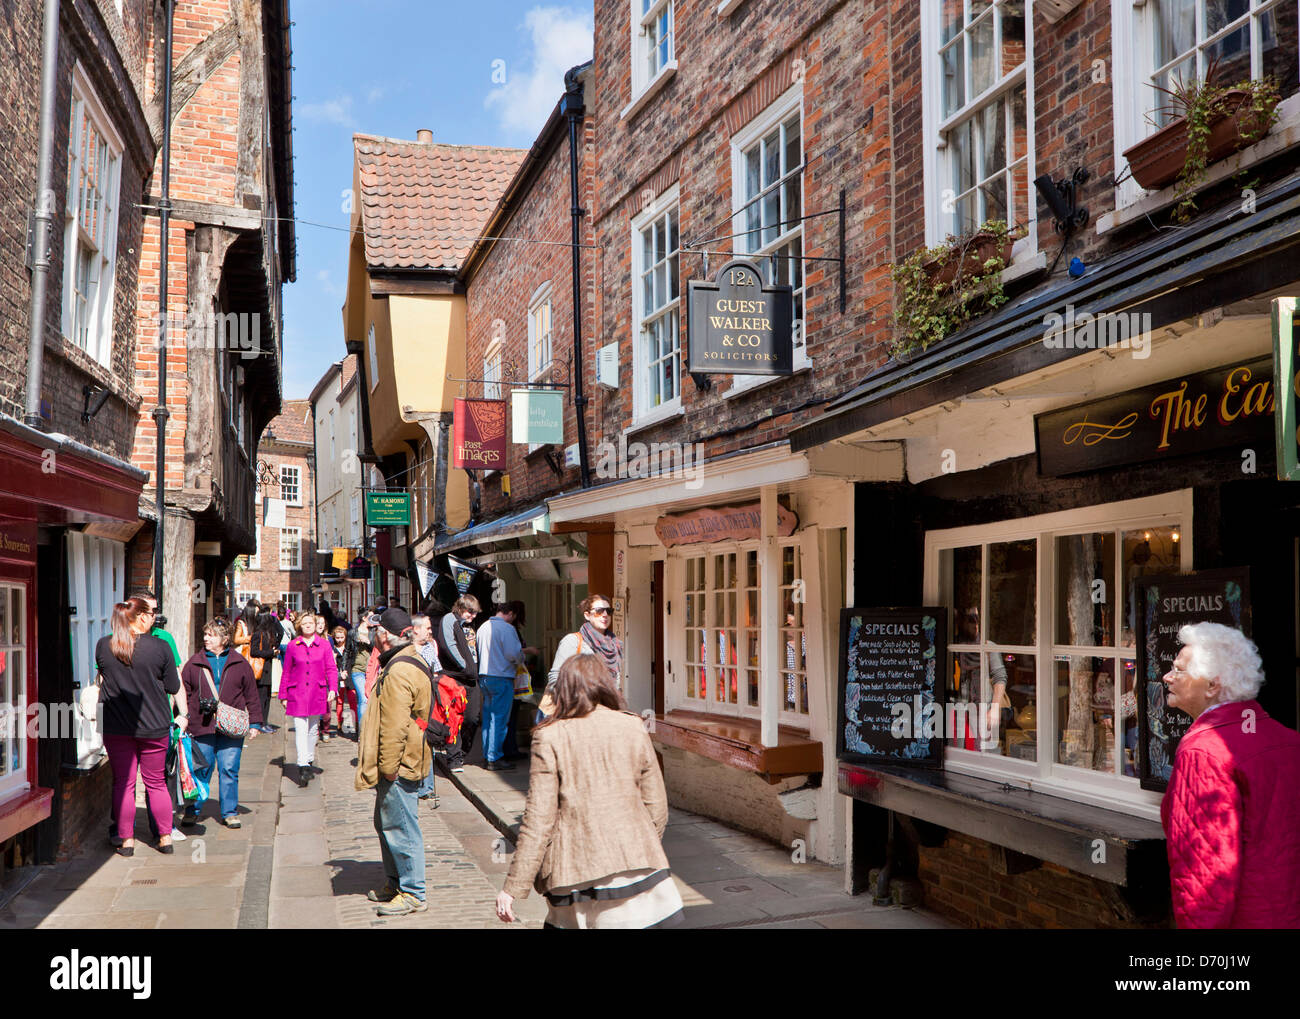 The Shambles, the narrow street of half-timbered old medieval buildings, York, North Yorkshire England, UK, GB, EU, Europe Stock Photo